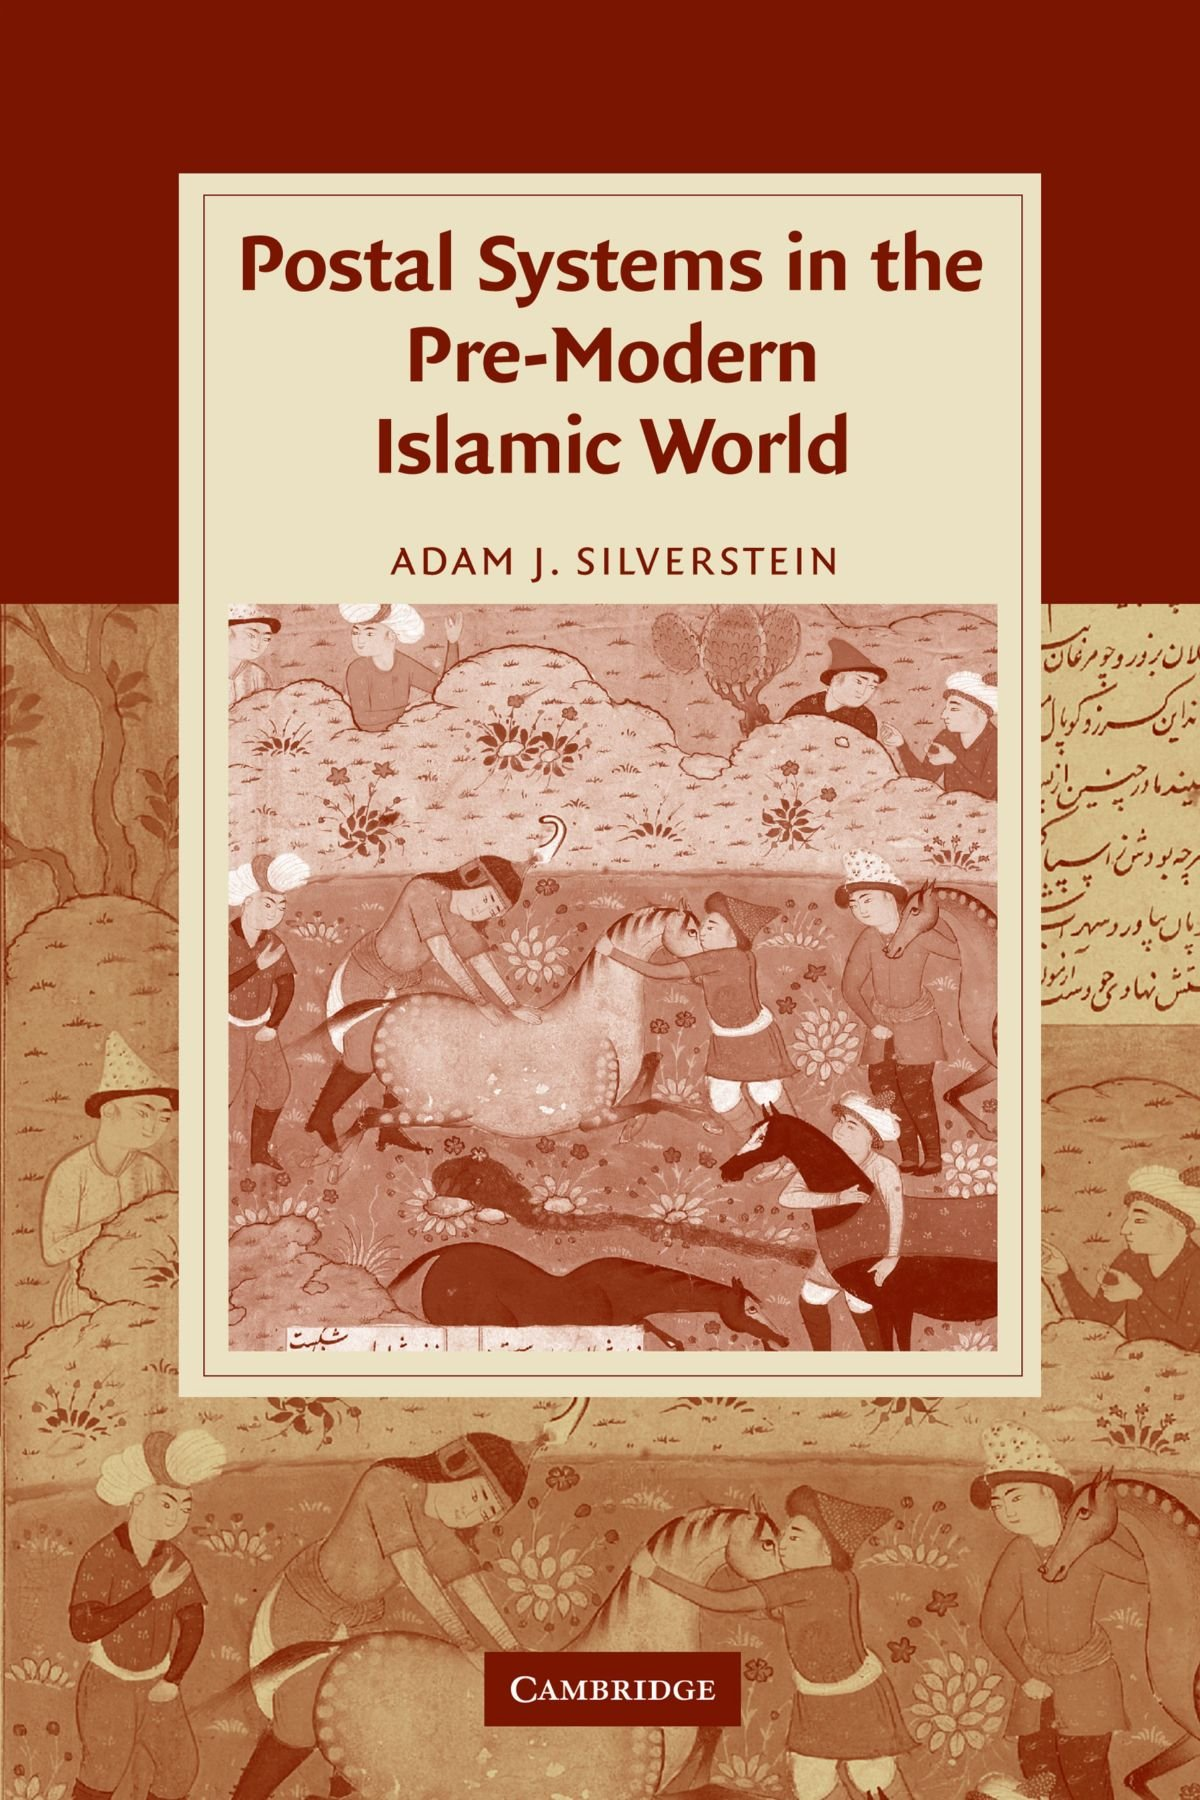 Postal Systems in the Pre-Modern Islamic World (Cambridge Studies in Islamic Civilization) PDF